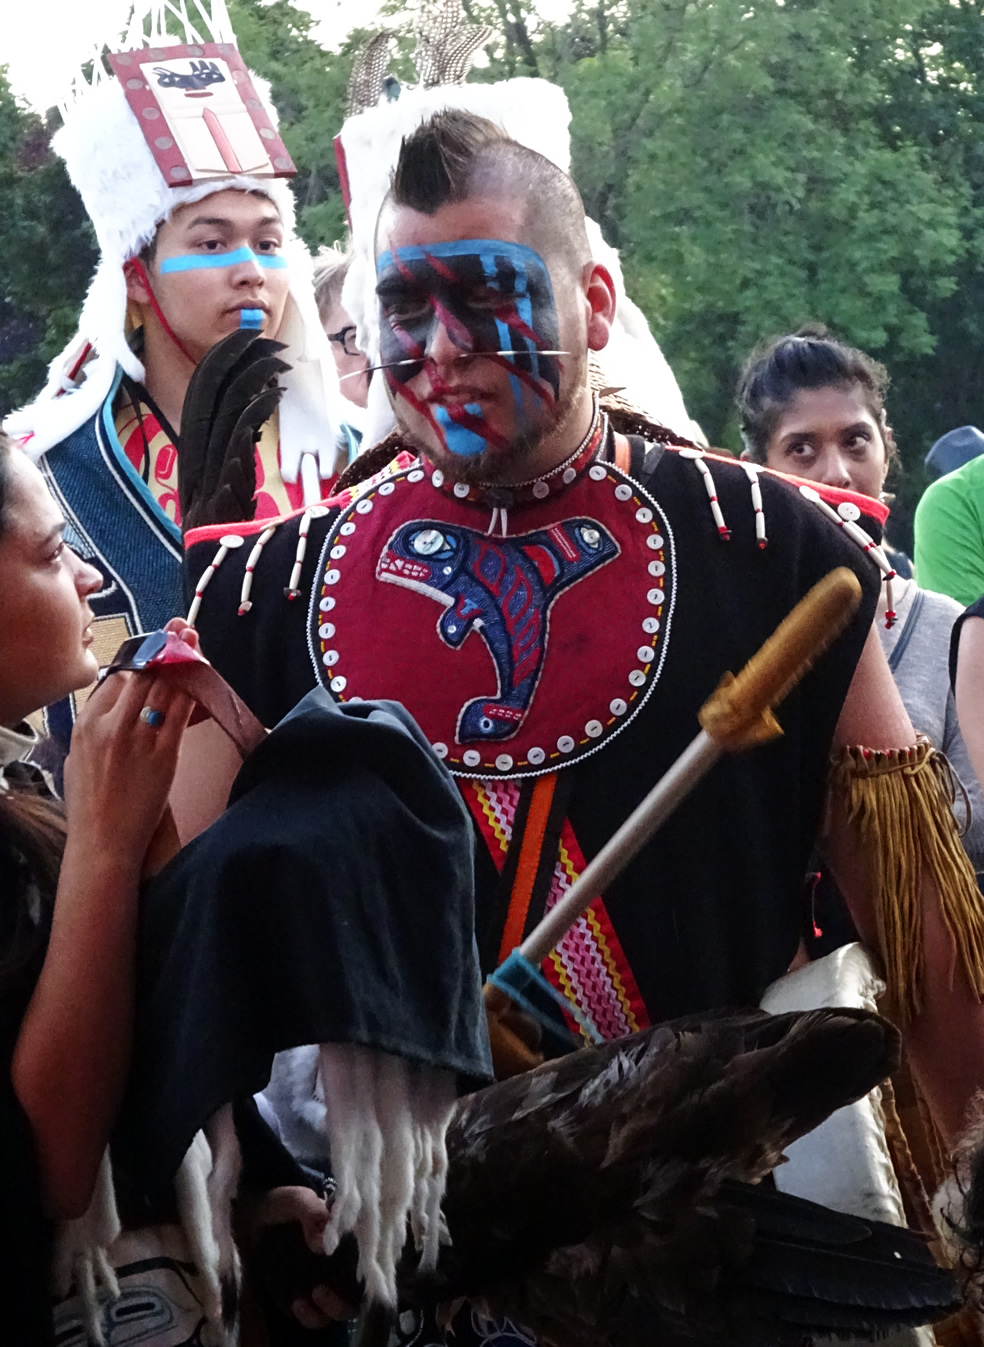 Lead drummer Gary Johnson prepares backstage to lead the Dakhká Khwáan Dancers